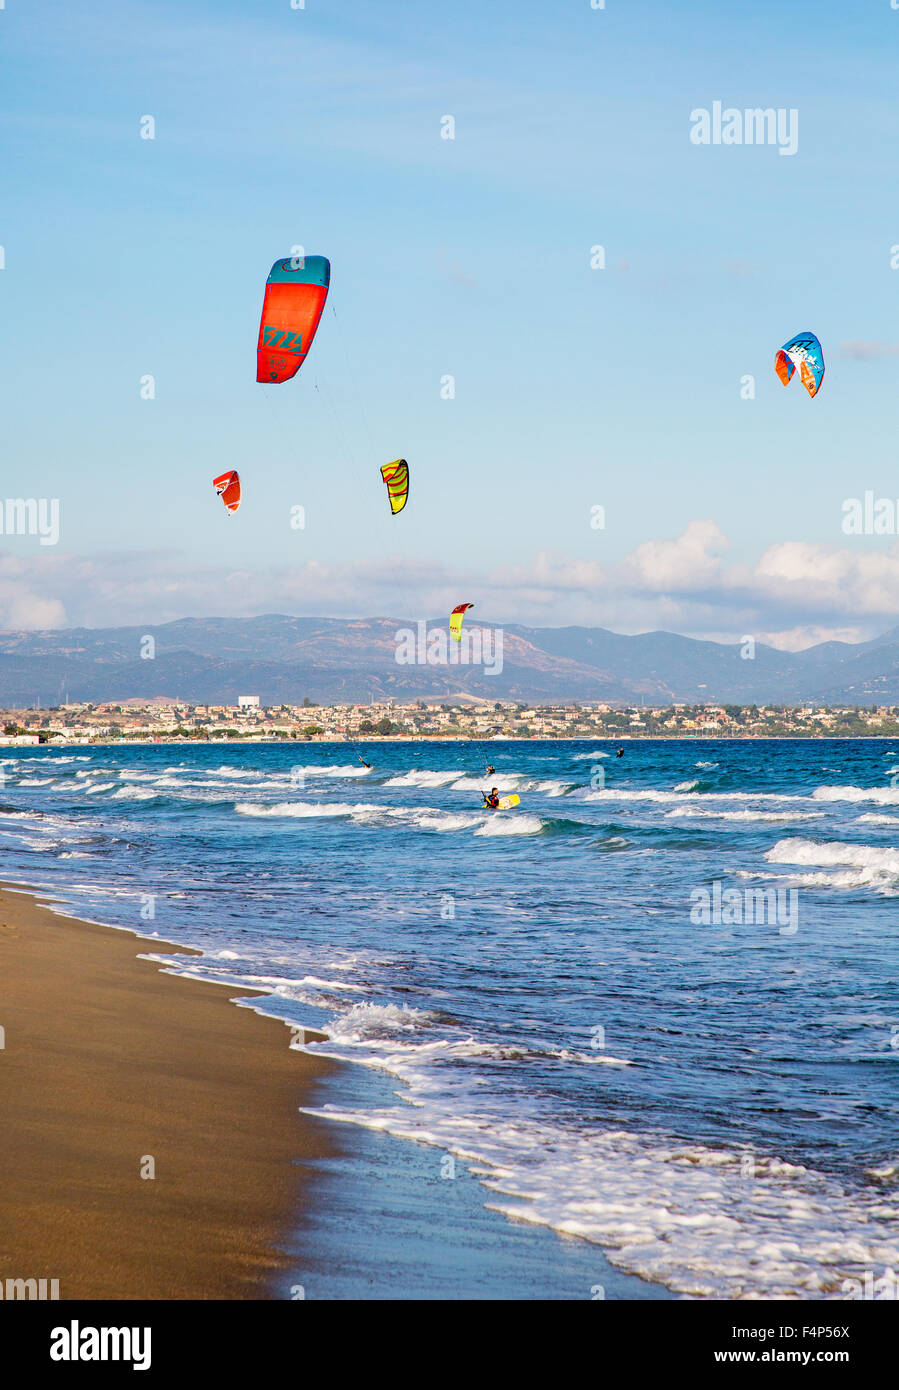 Kitesurfing On Poetto Beach Cagliari Sardinia Italy - Stock Image